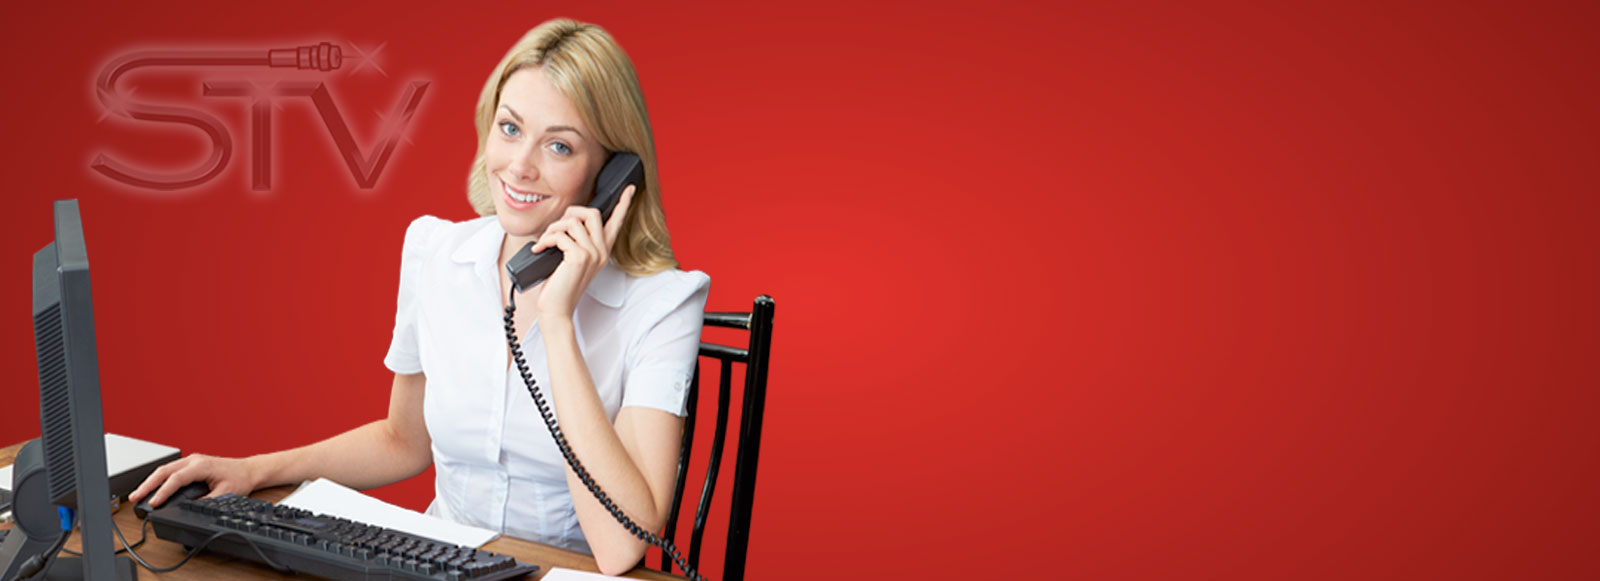 Woman Receptionist on Phone